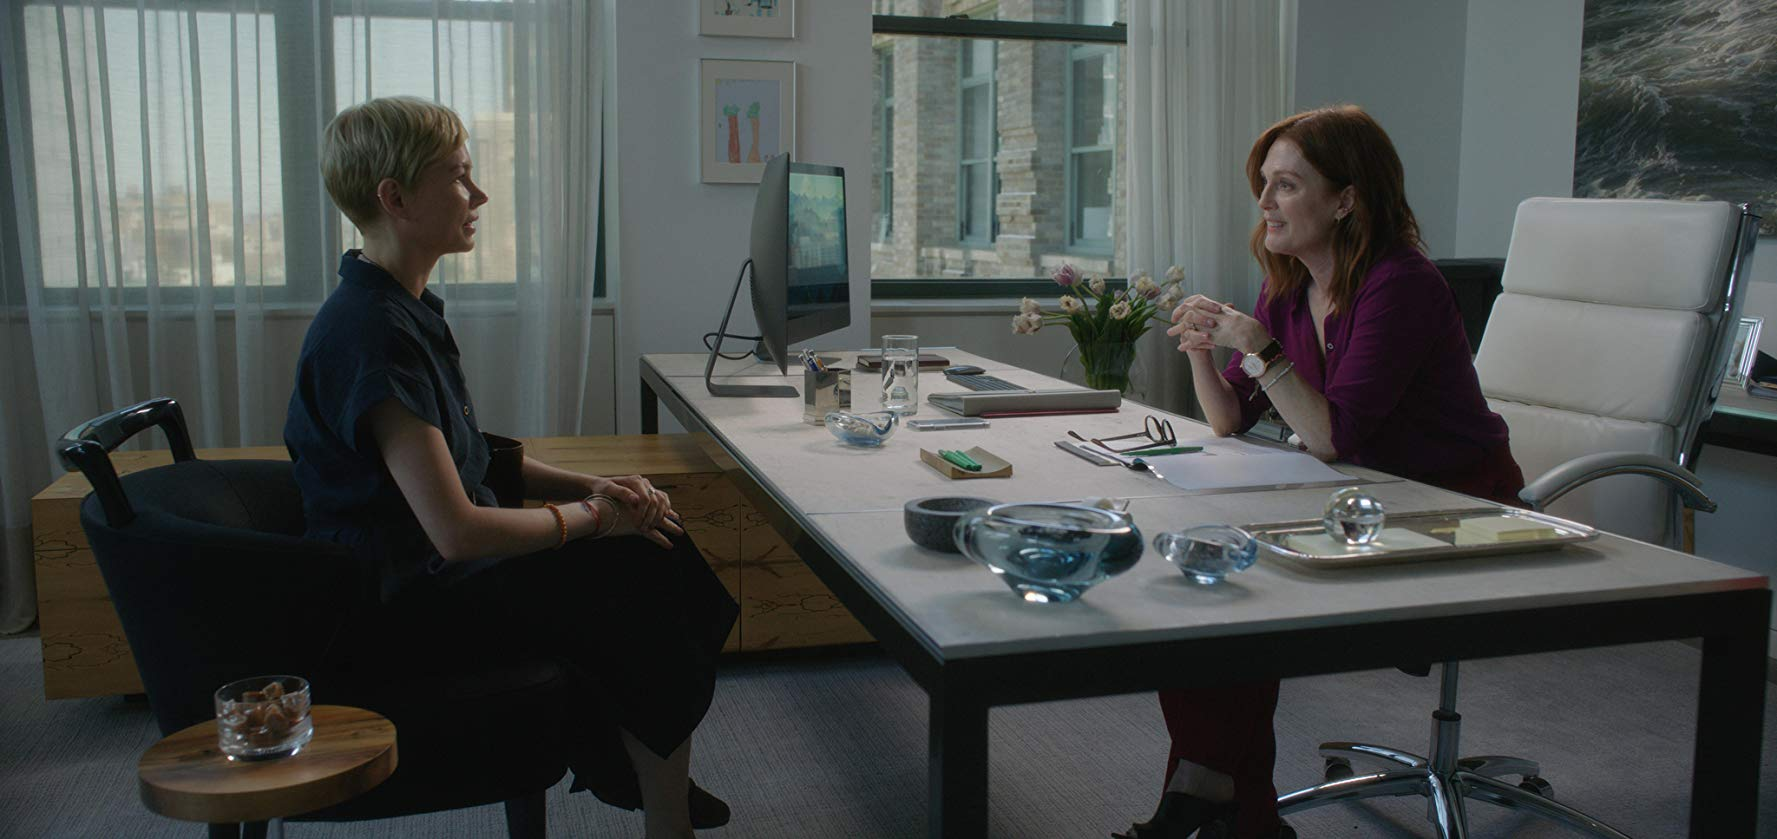 https://i2.wp.com/teaser-trailer.com/wp-content/uploads/Julianne-Moore-and-Michelle-Williams-in-After-the-Wedding-2019.jpg?ssl=1